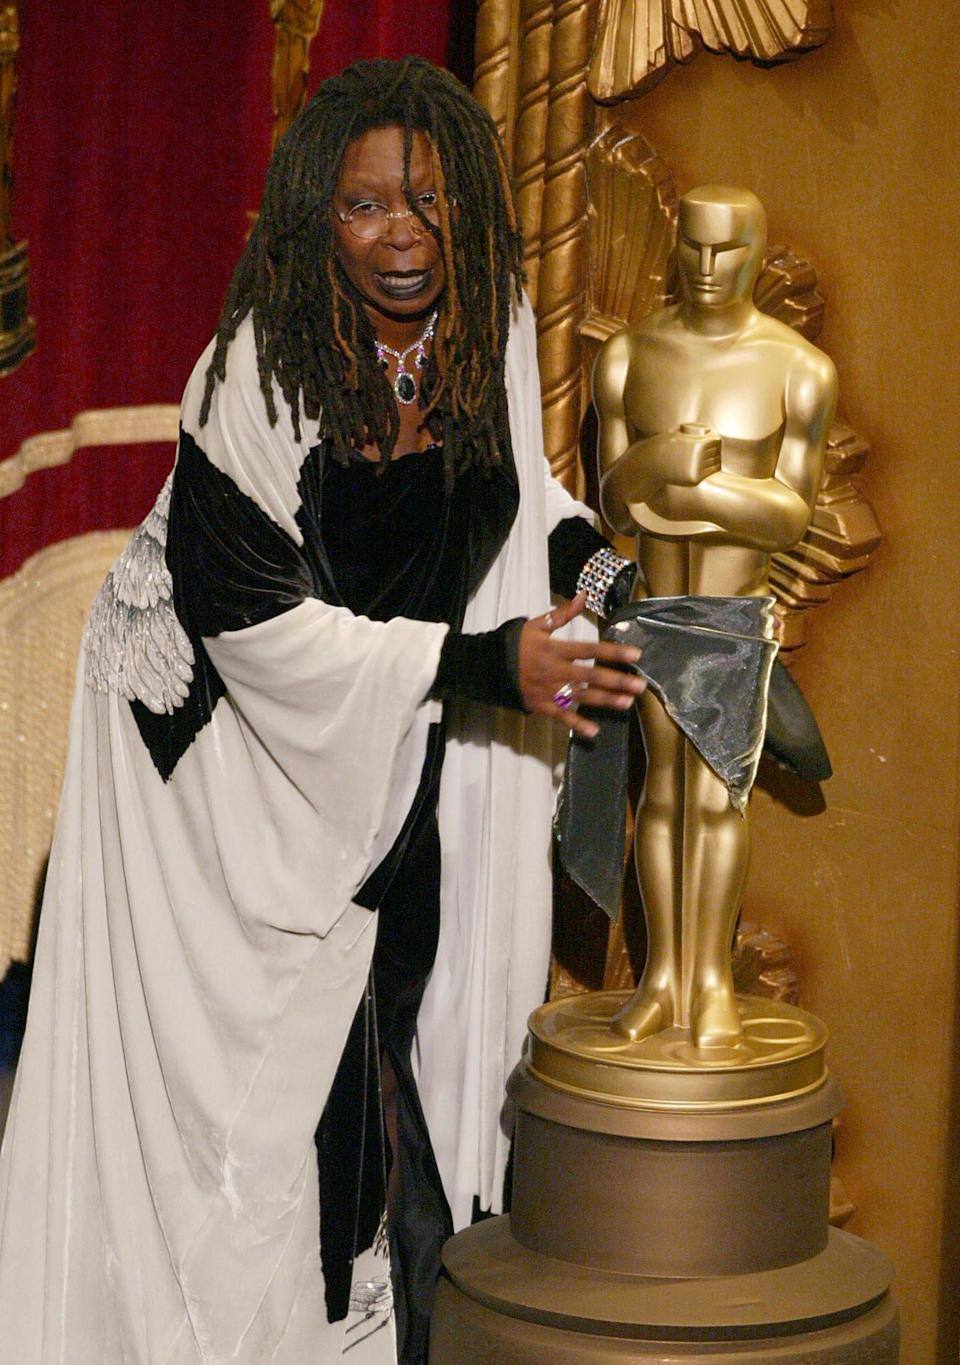 US actress and comedian Whoopi Goldberg jokes around with a Oscar statue during the 74th Academy Awards at the Kodak Theater in Hollywood 24 March 2002. (TIMOTHY A. CLARY/AFP/Getty Images)